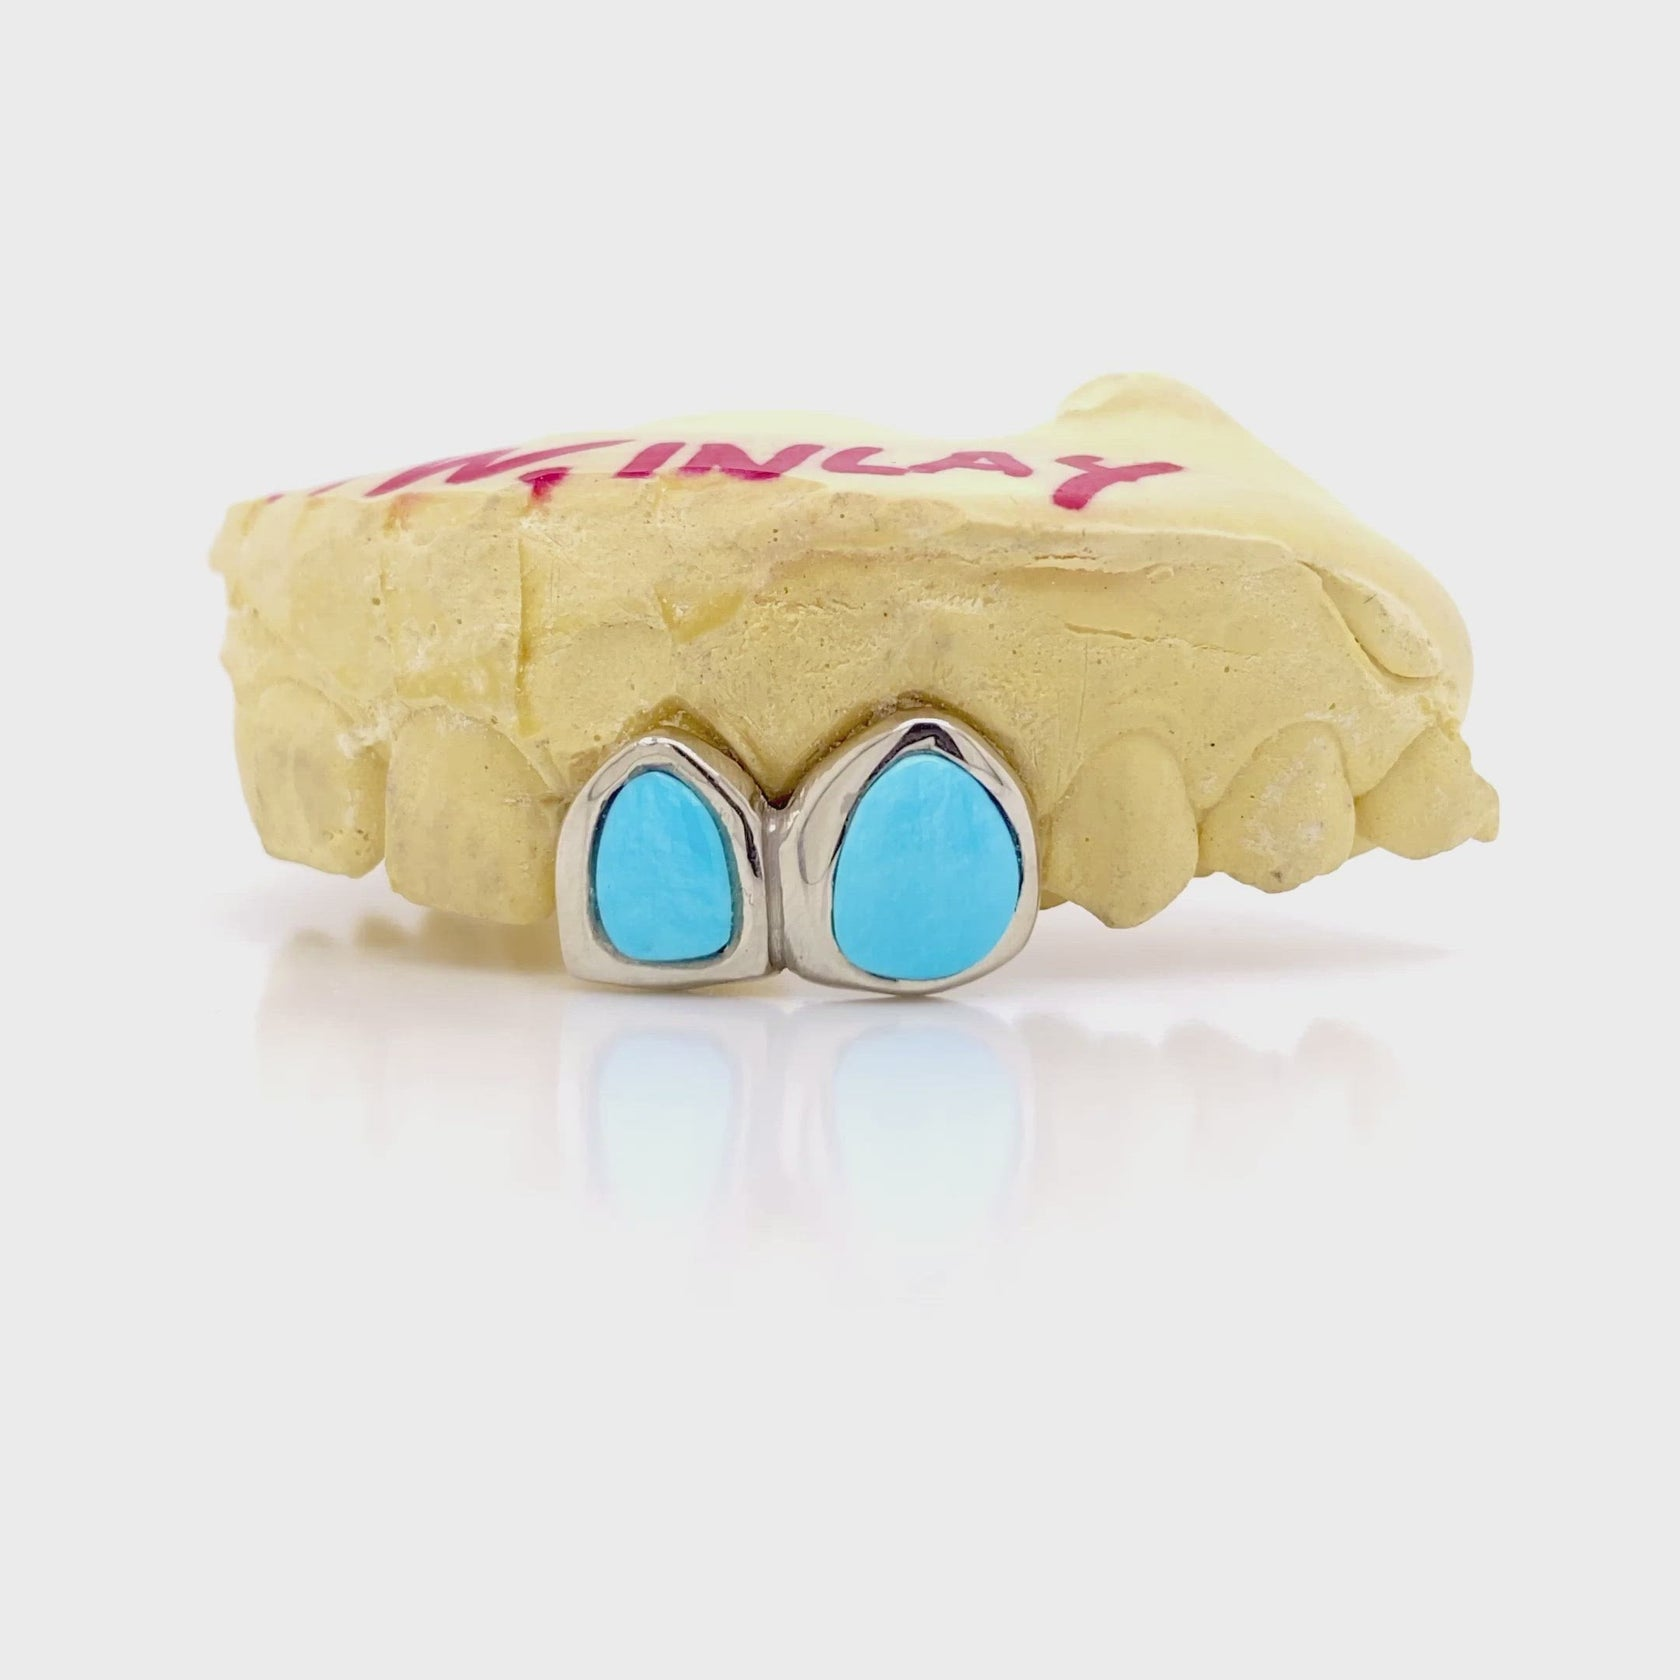 Turquoise Gold Grillz